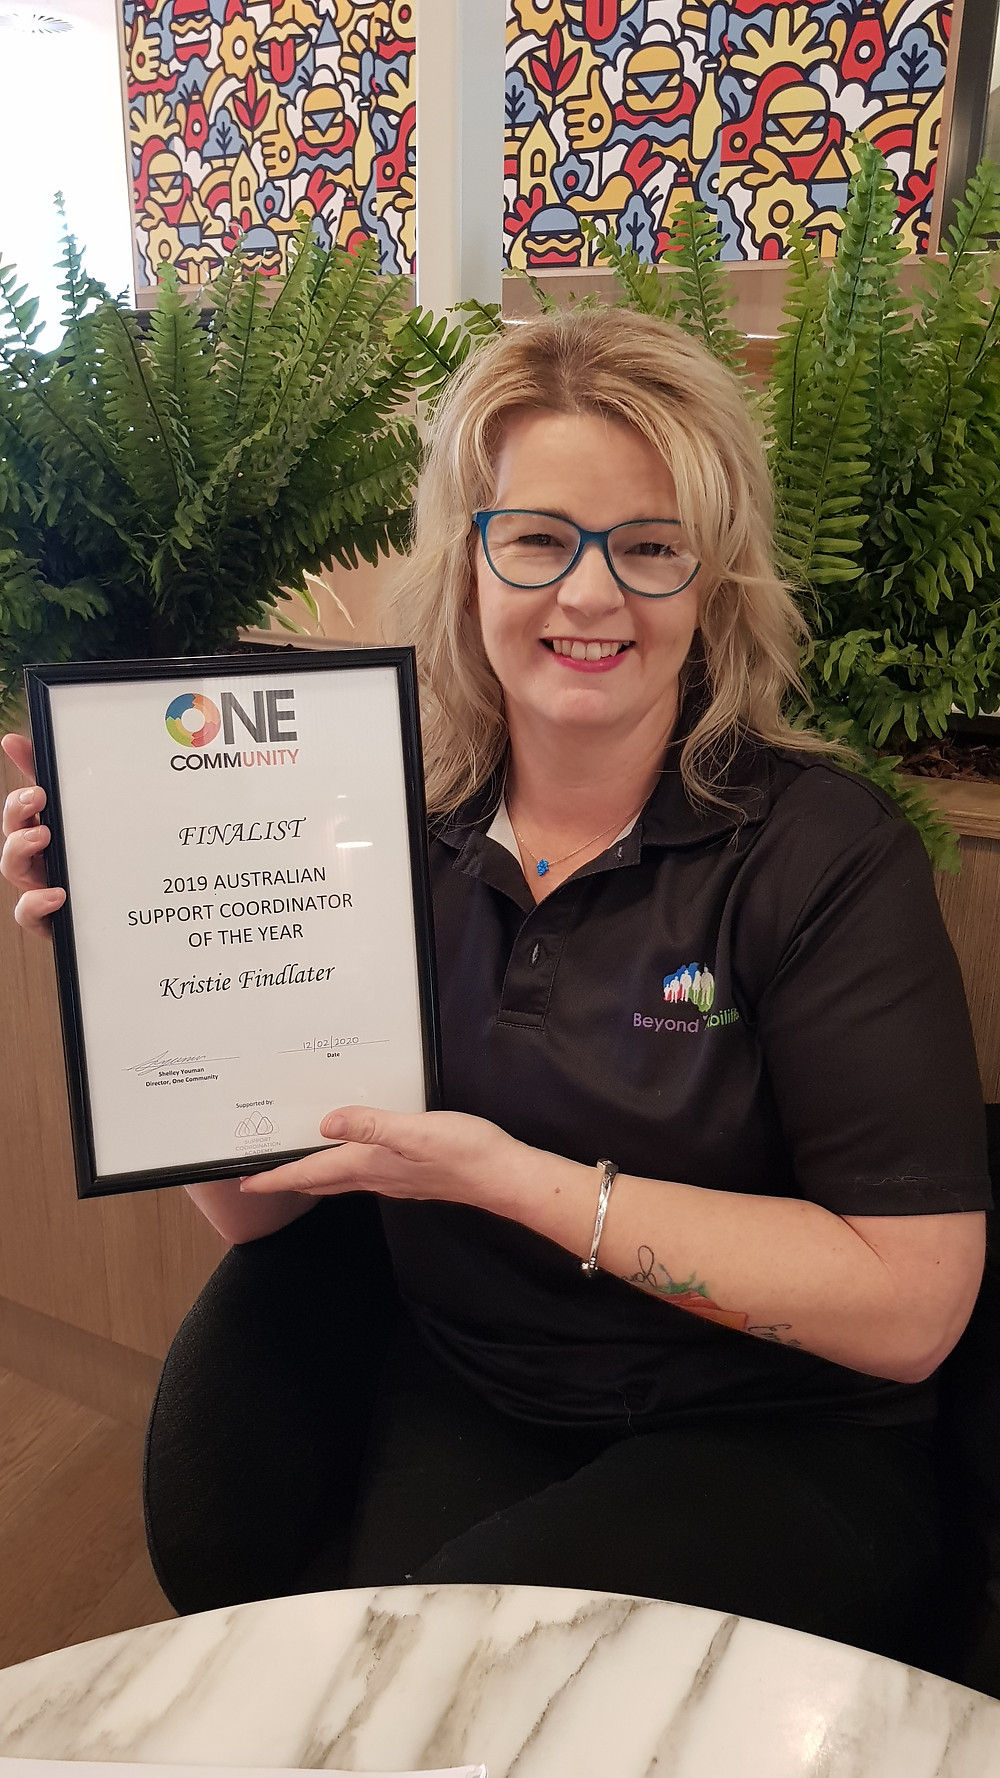 Beyond Abilities' support coordinator Kristie Findlater, proudly showing her 2019 Australian Support Coordinator of the Year Award.